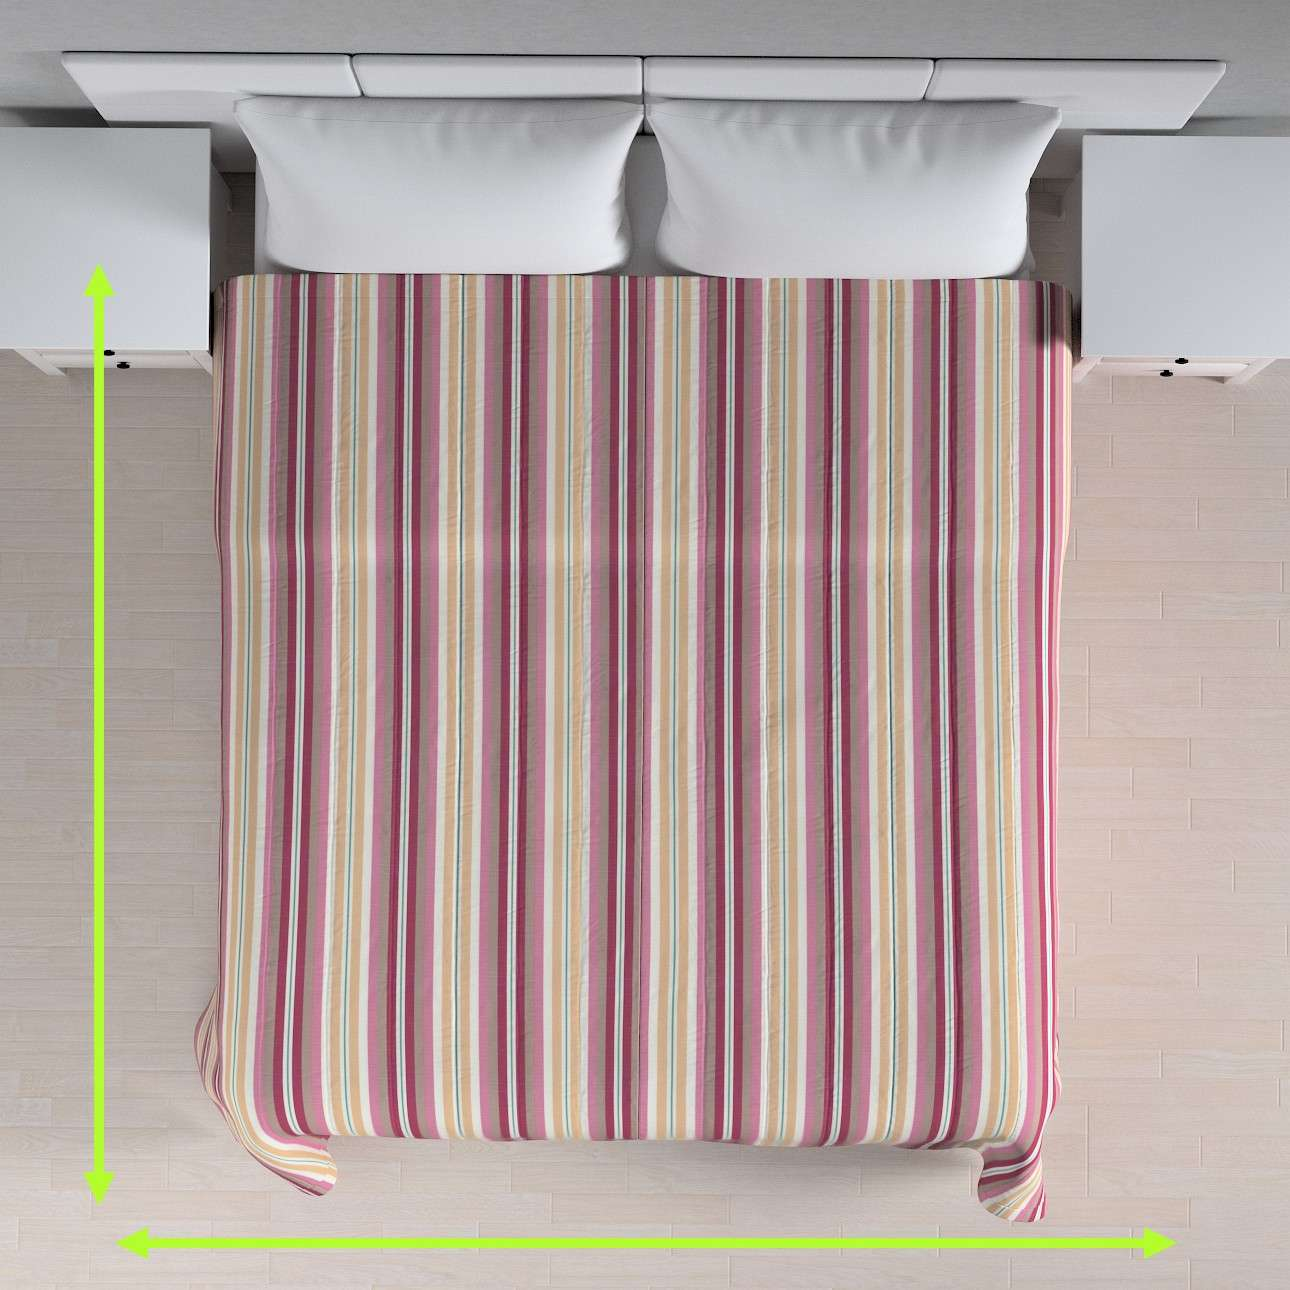 Quilted throw (vertical quilt pattern) in collection Mirella, fabric: 141-14